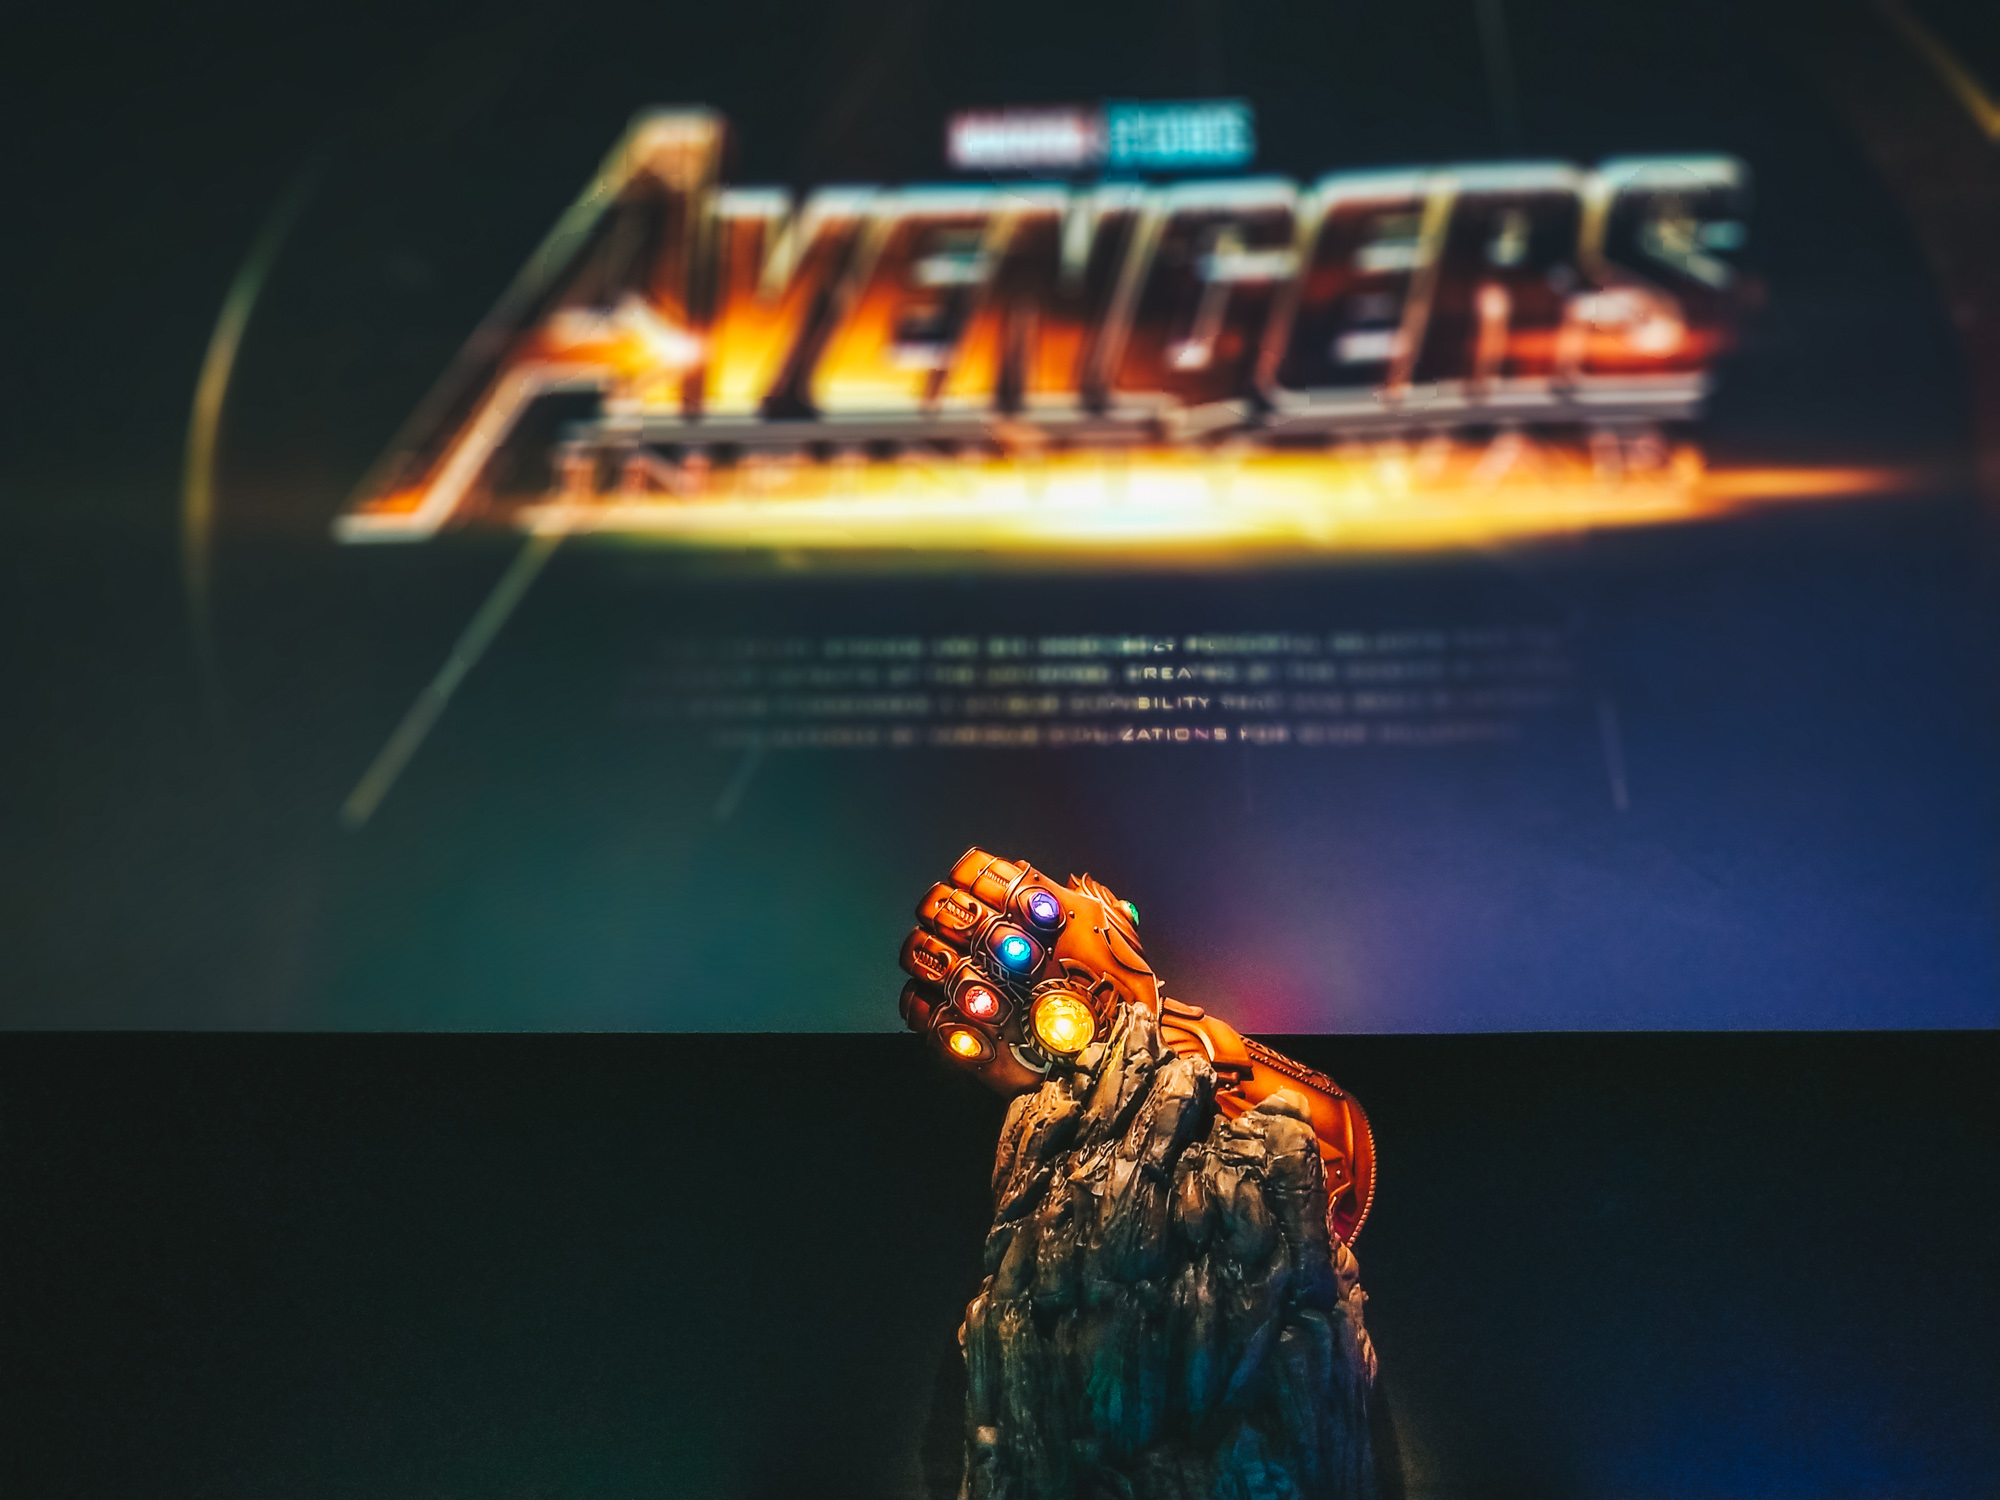 Marvel Studios: Ten Years of Heroes Exhibition Opens in Singapore